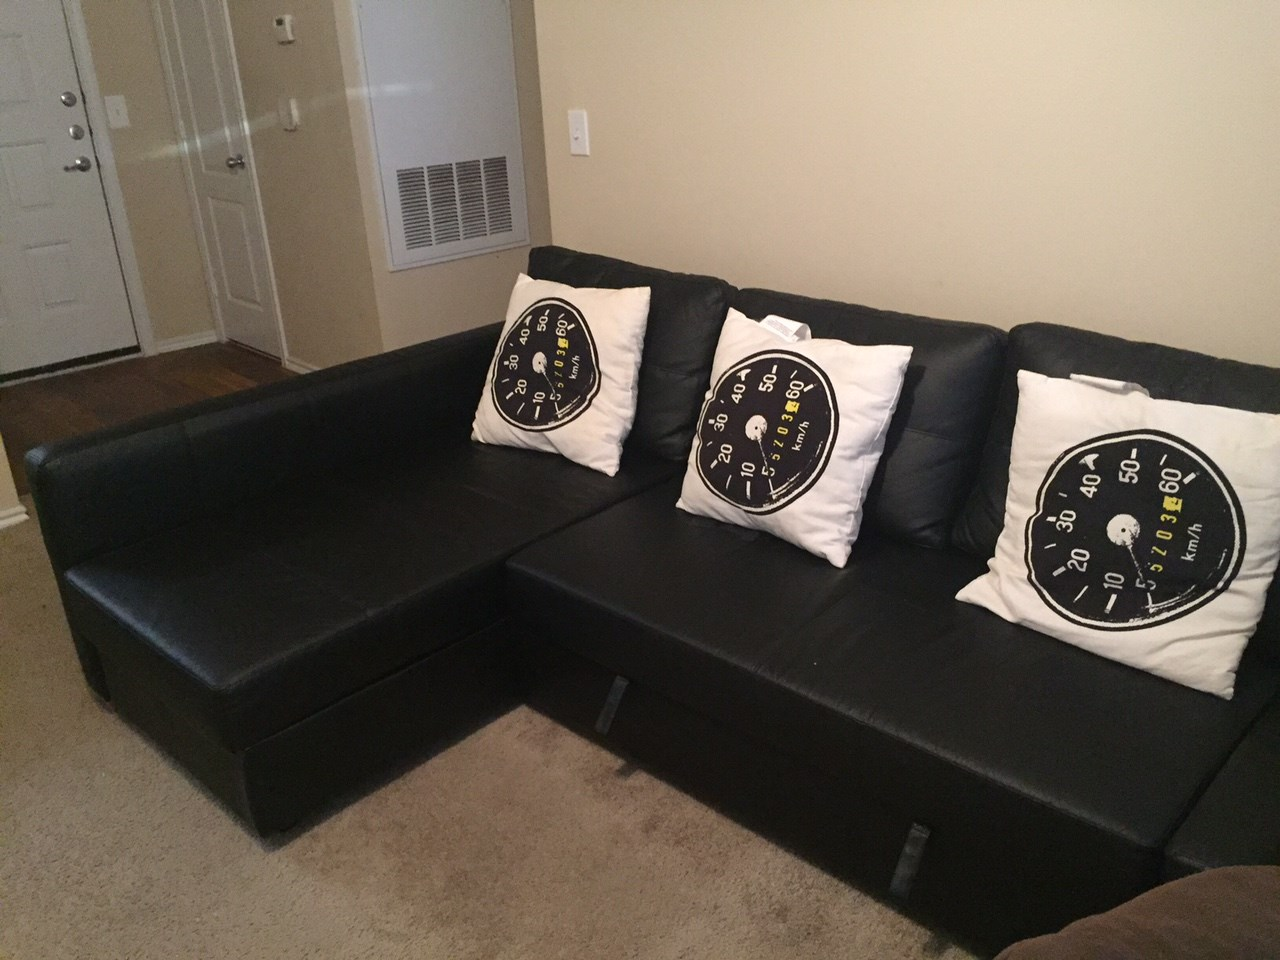 Sell Furniture And Home Decor  Sofa cum bed. Buy Sell Online Used Furniture And Home Decor Dallas Fortworth